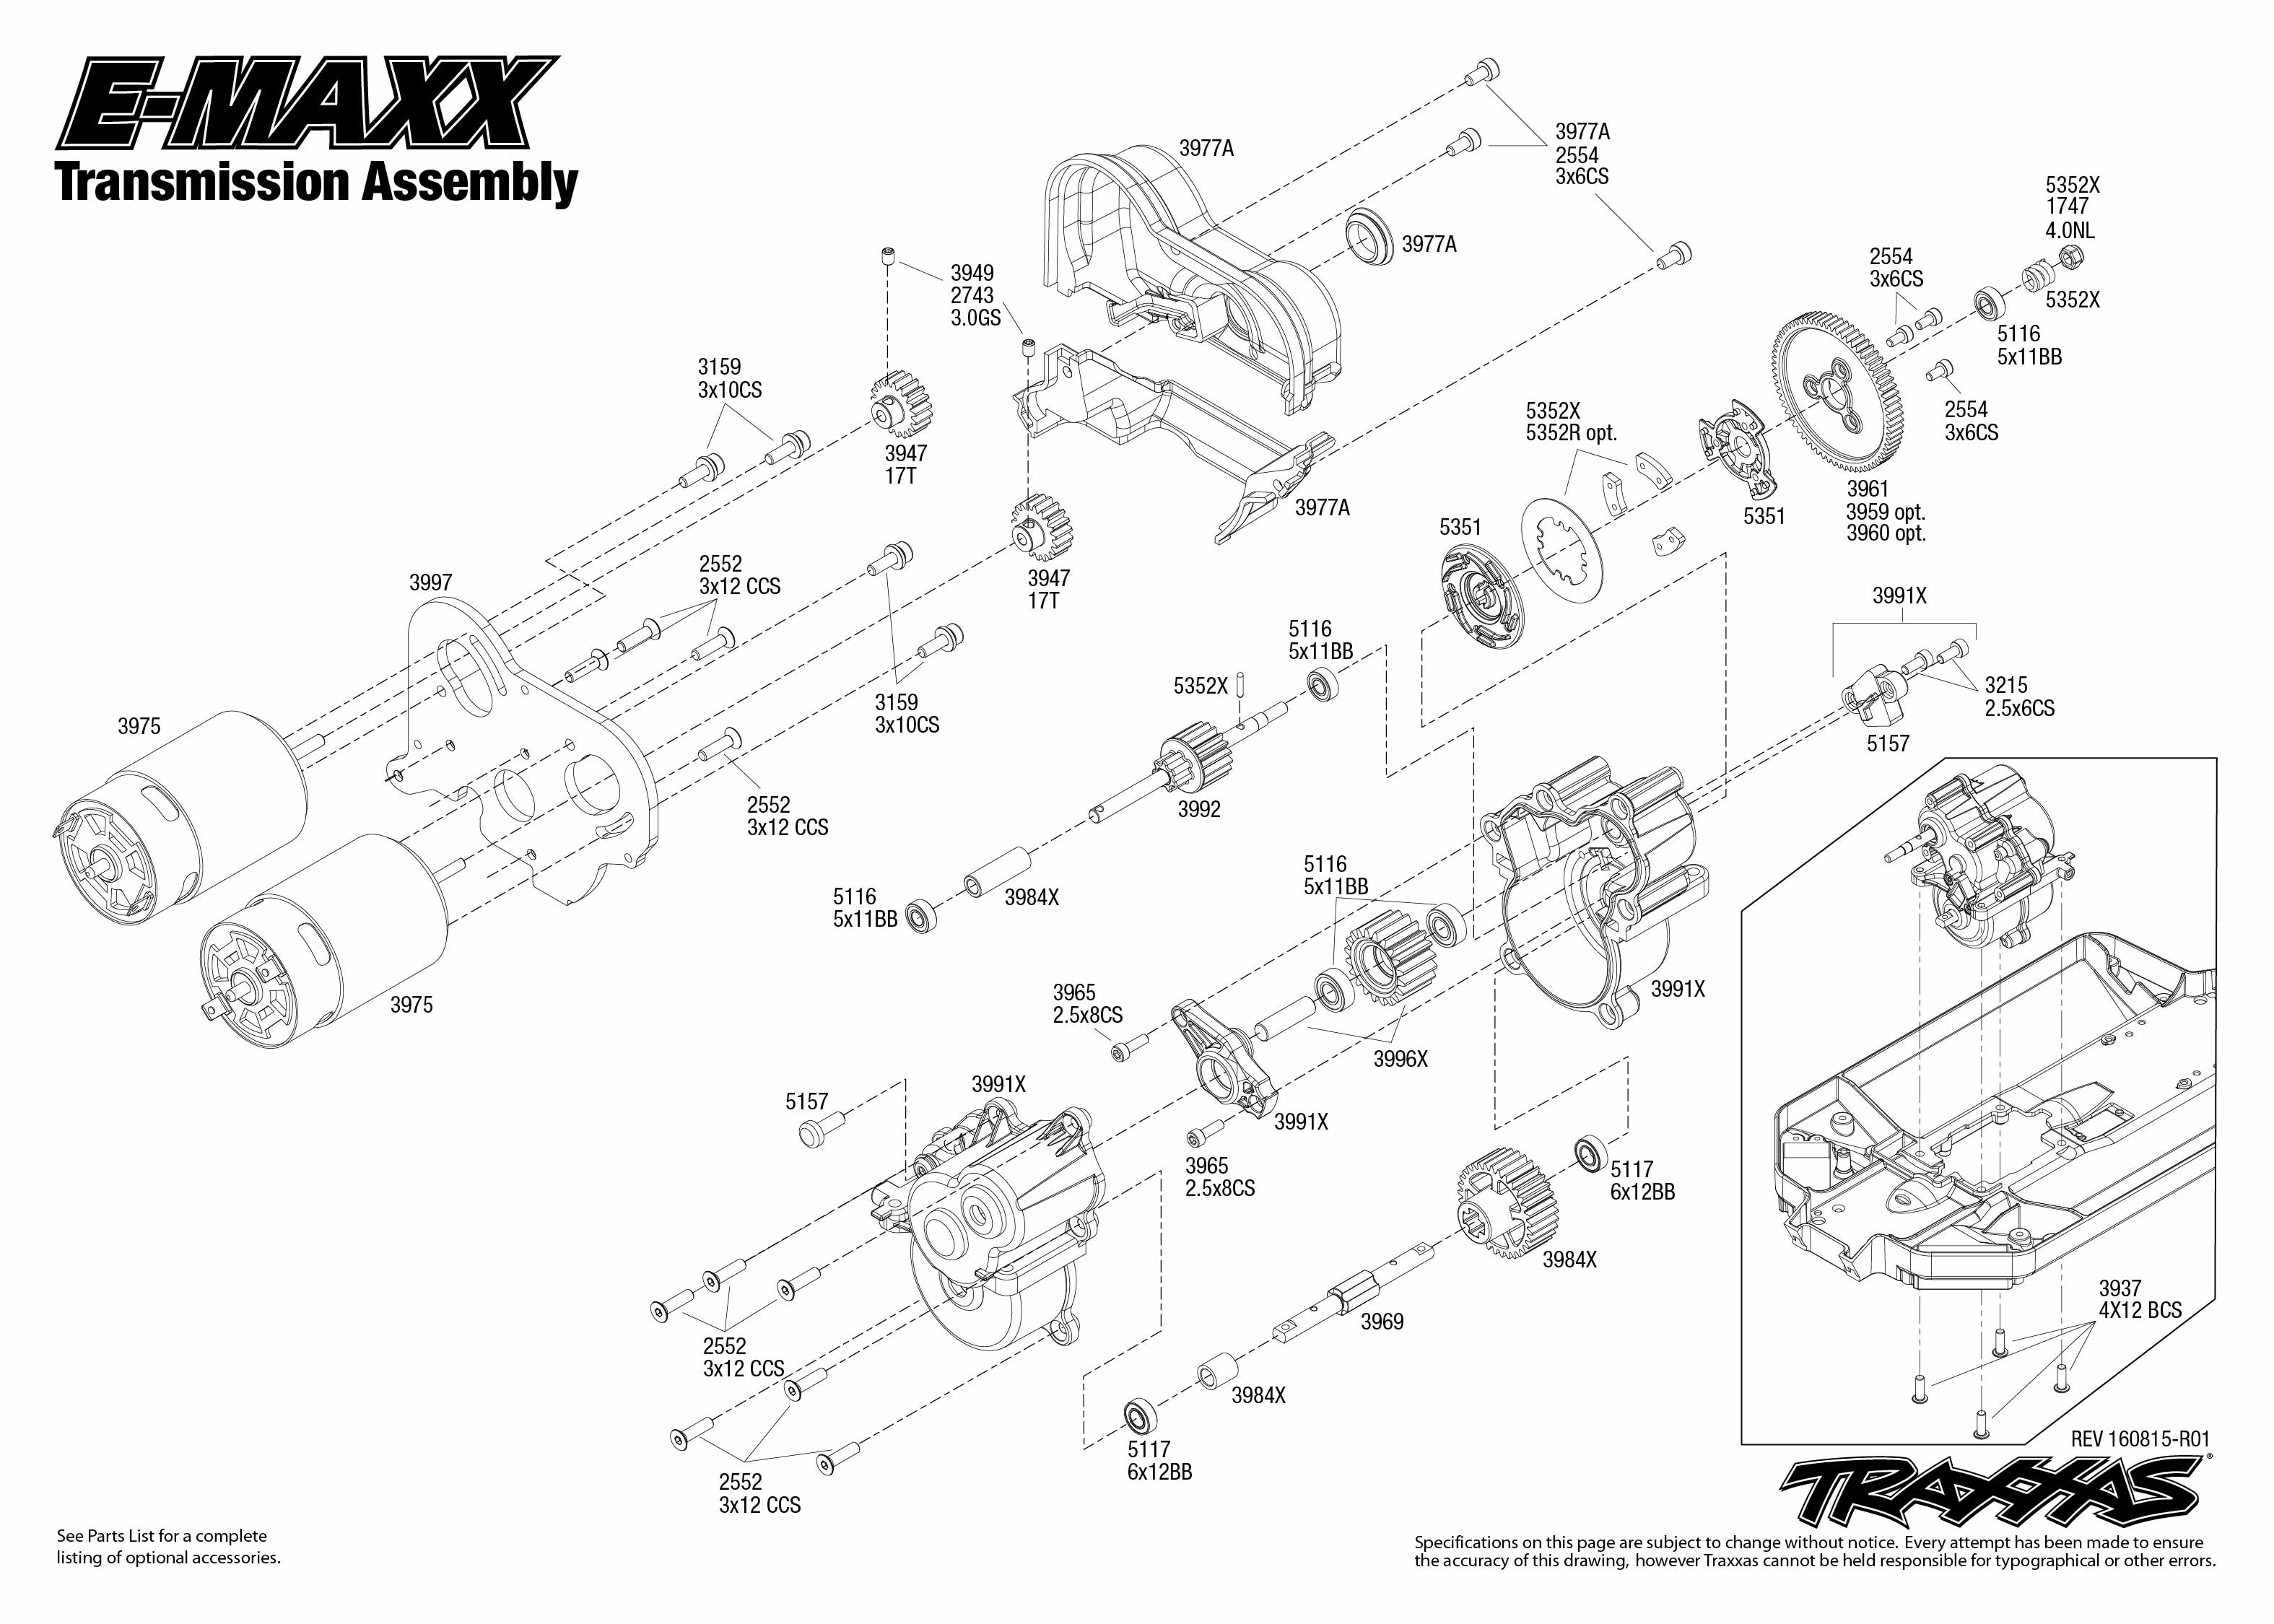 E Maxx 1 Transmission Assembly Exploded View